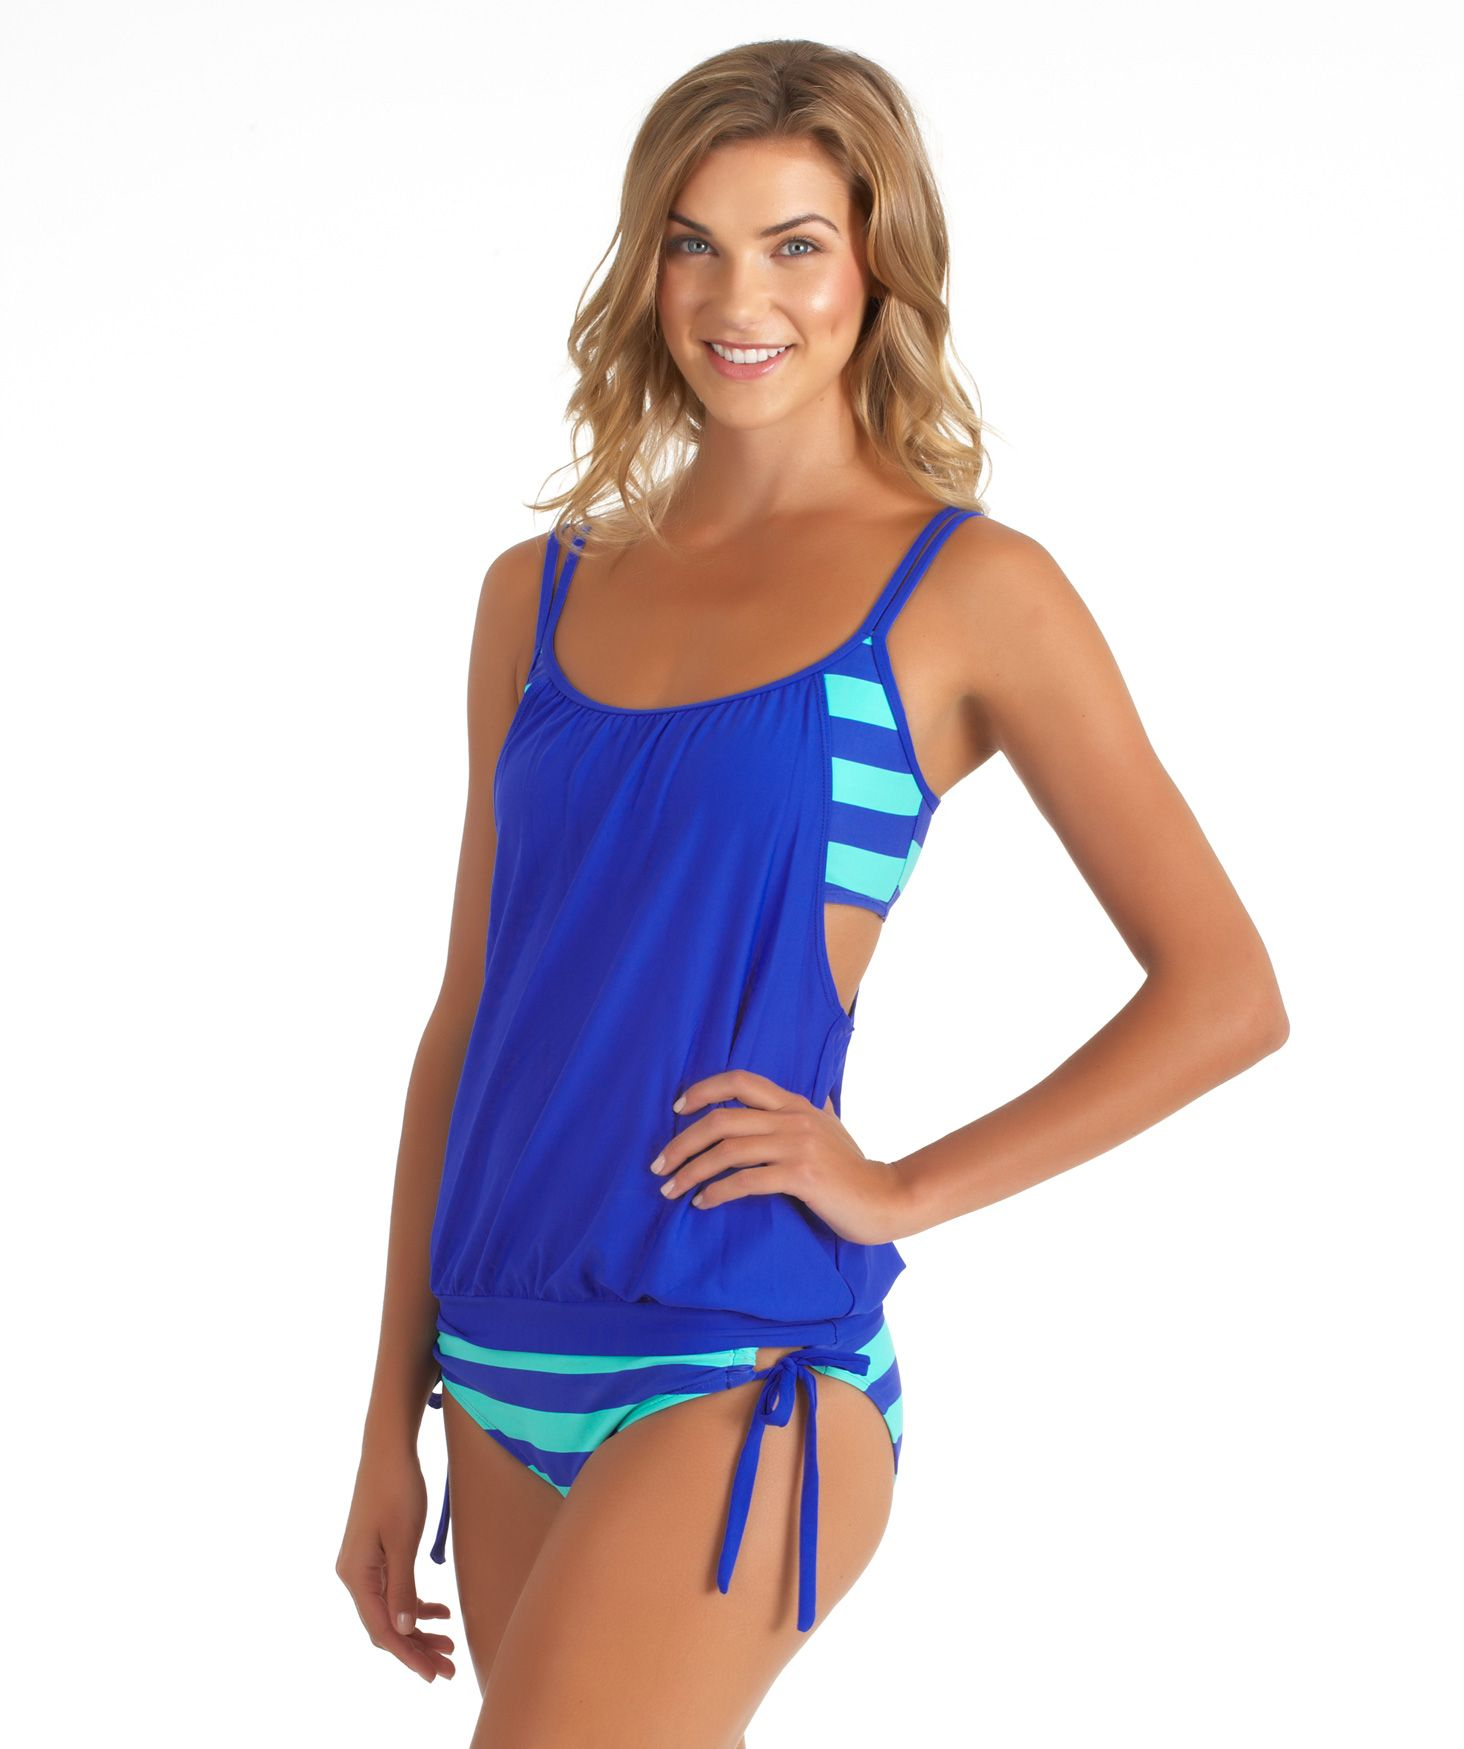 5ad266880e60a Underwire Swimsuit Tops | Push Up Swimwear | Underwire Swimsuits 2014